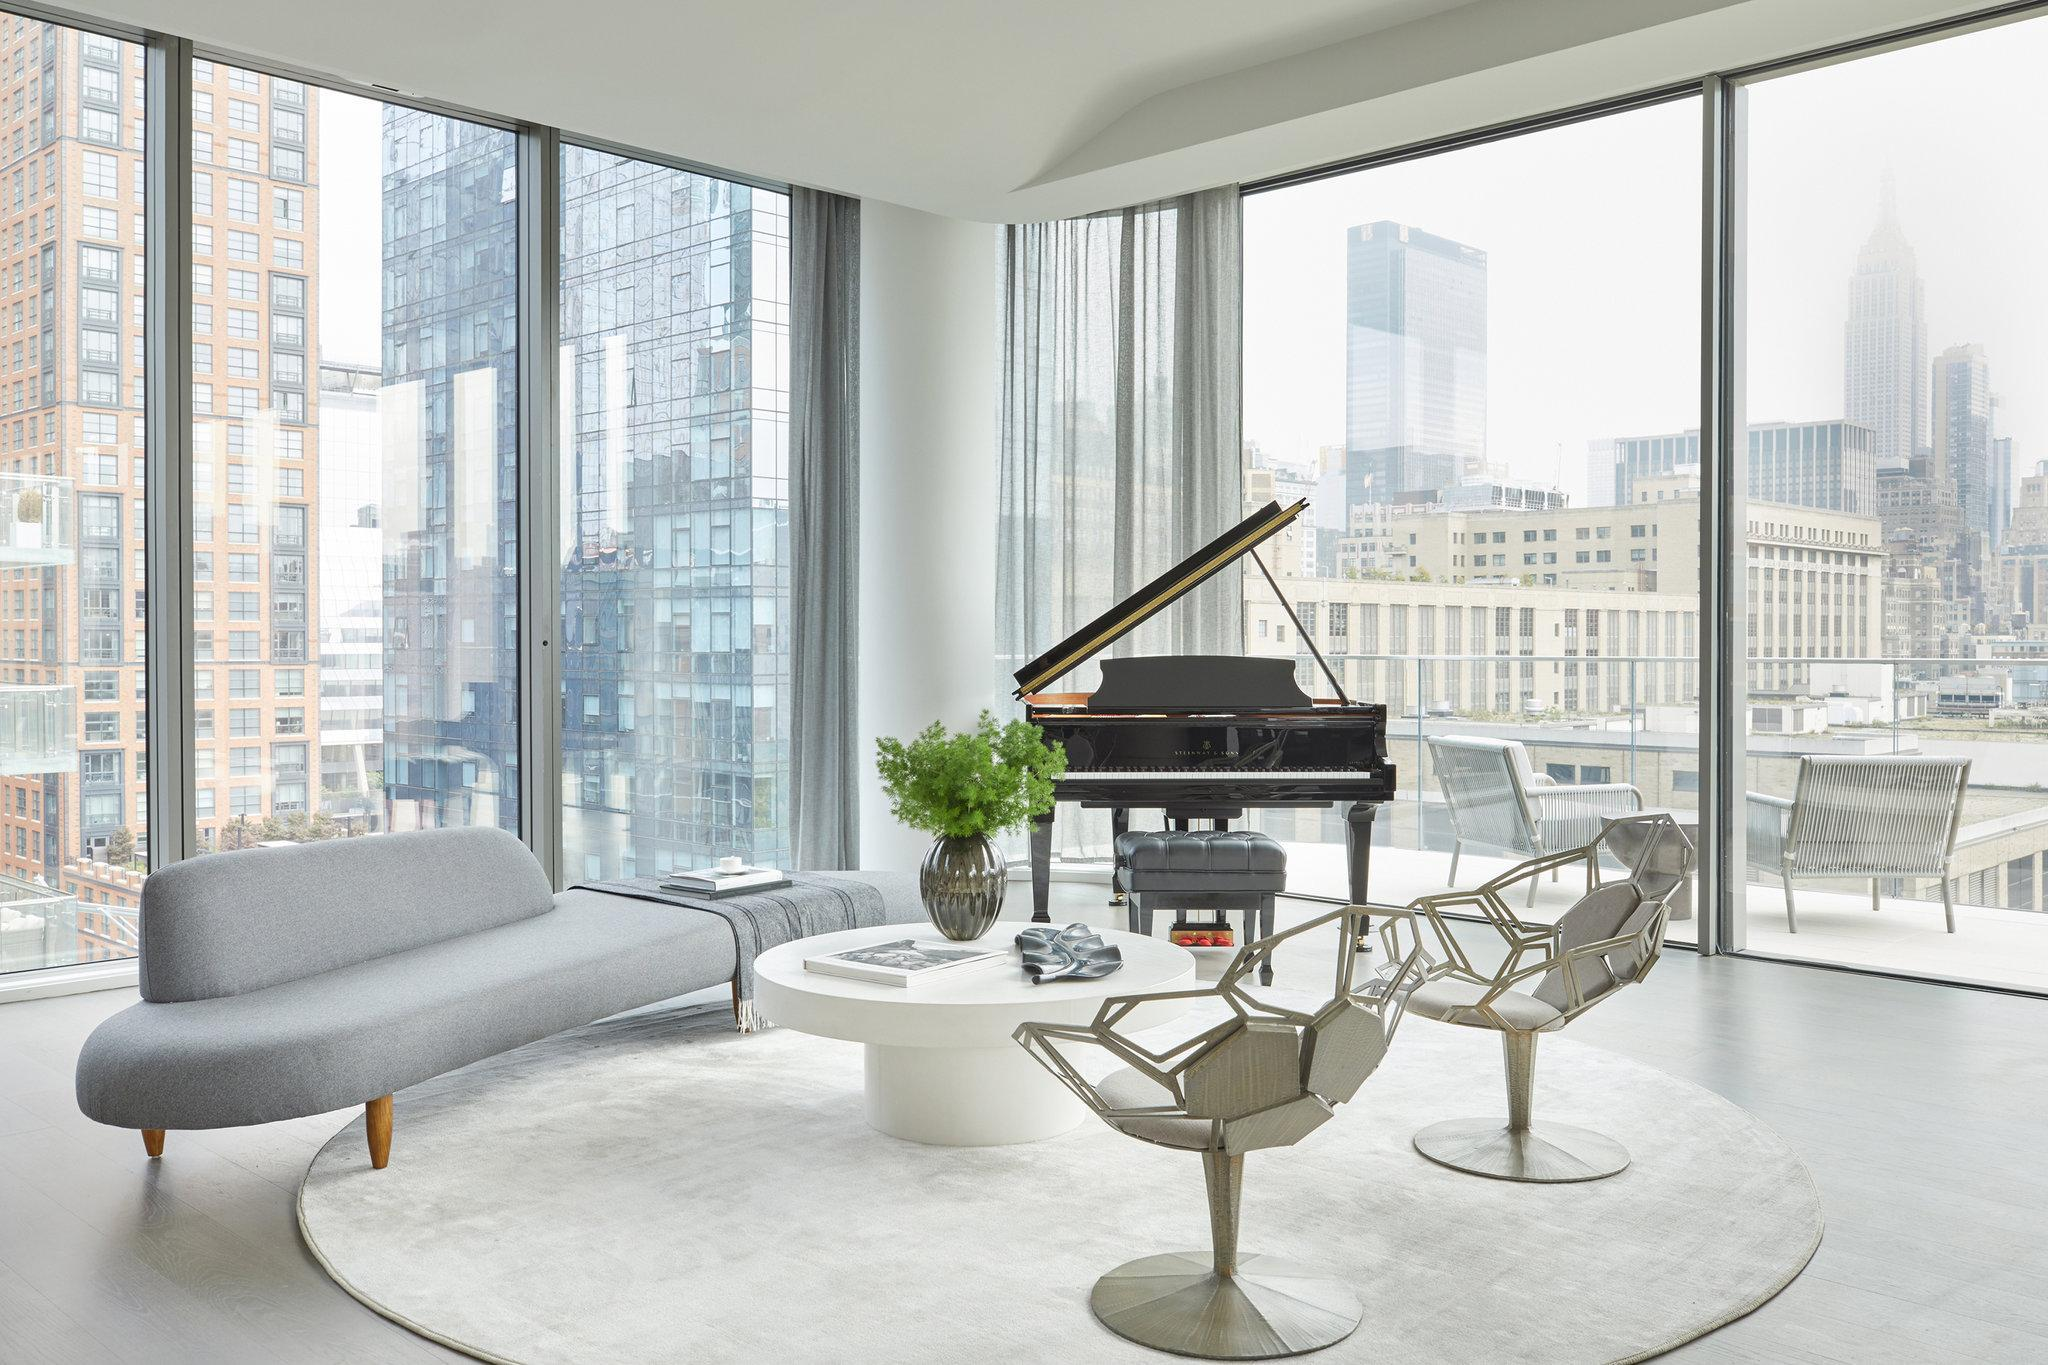 Reloaded twaddle – RT @SteinwayAndSons: This penthouse designed by Zaha Hadid would not be complete...